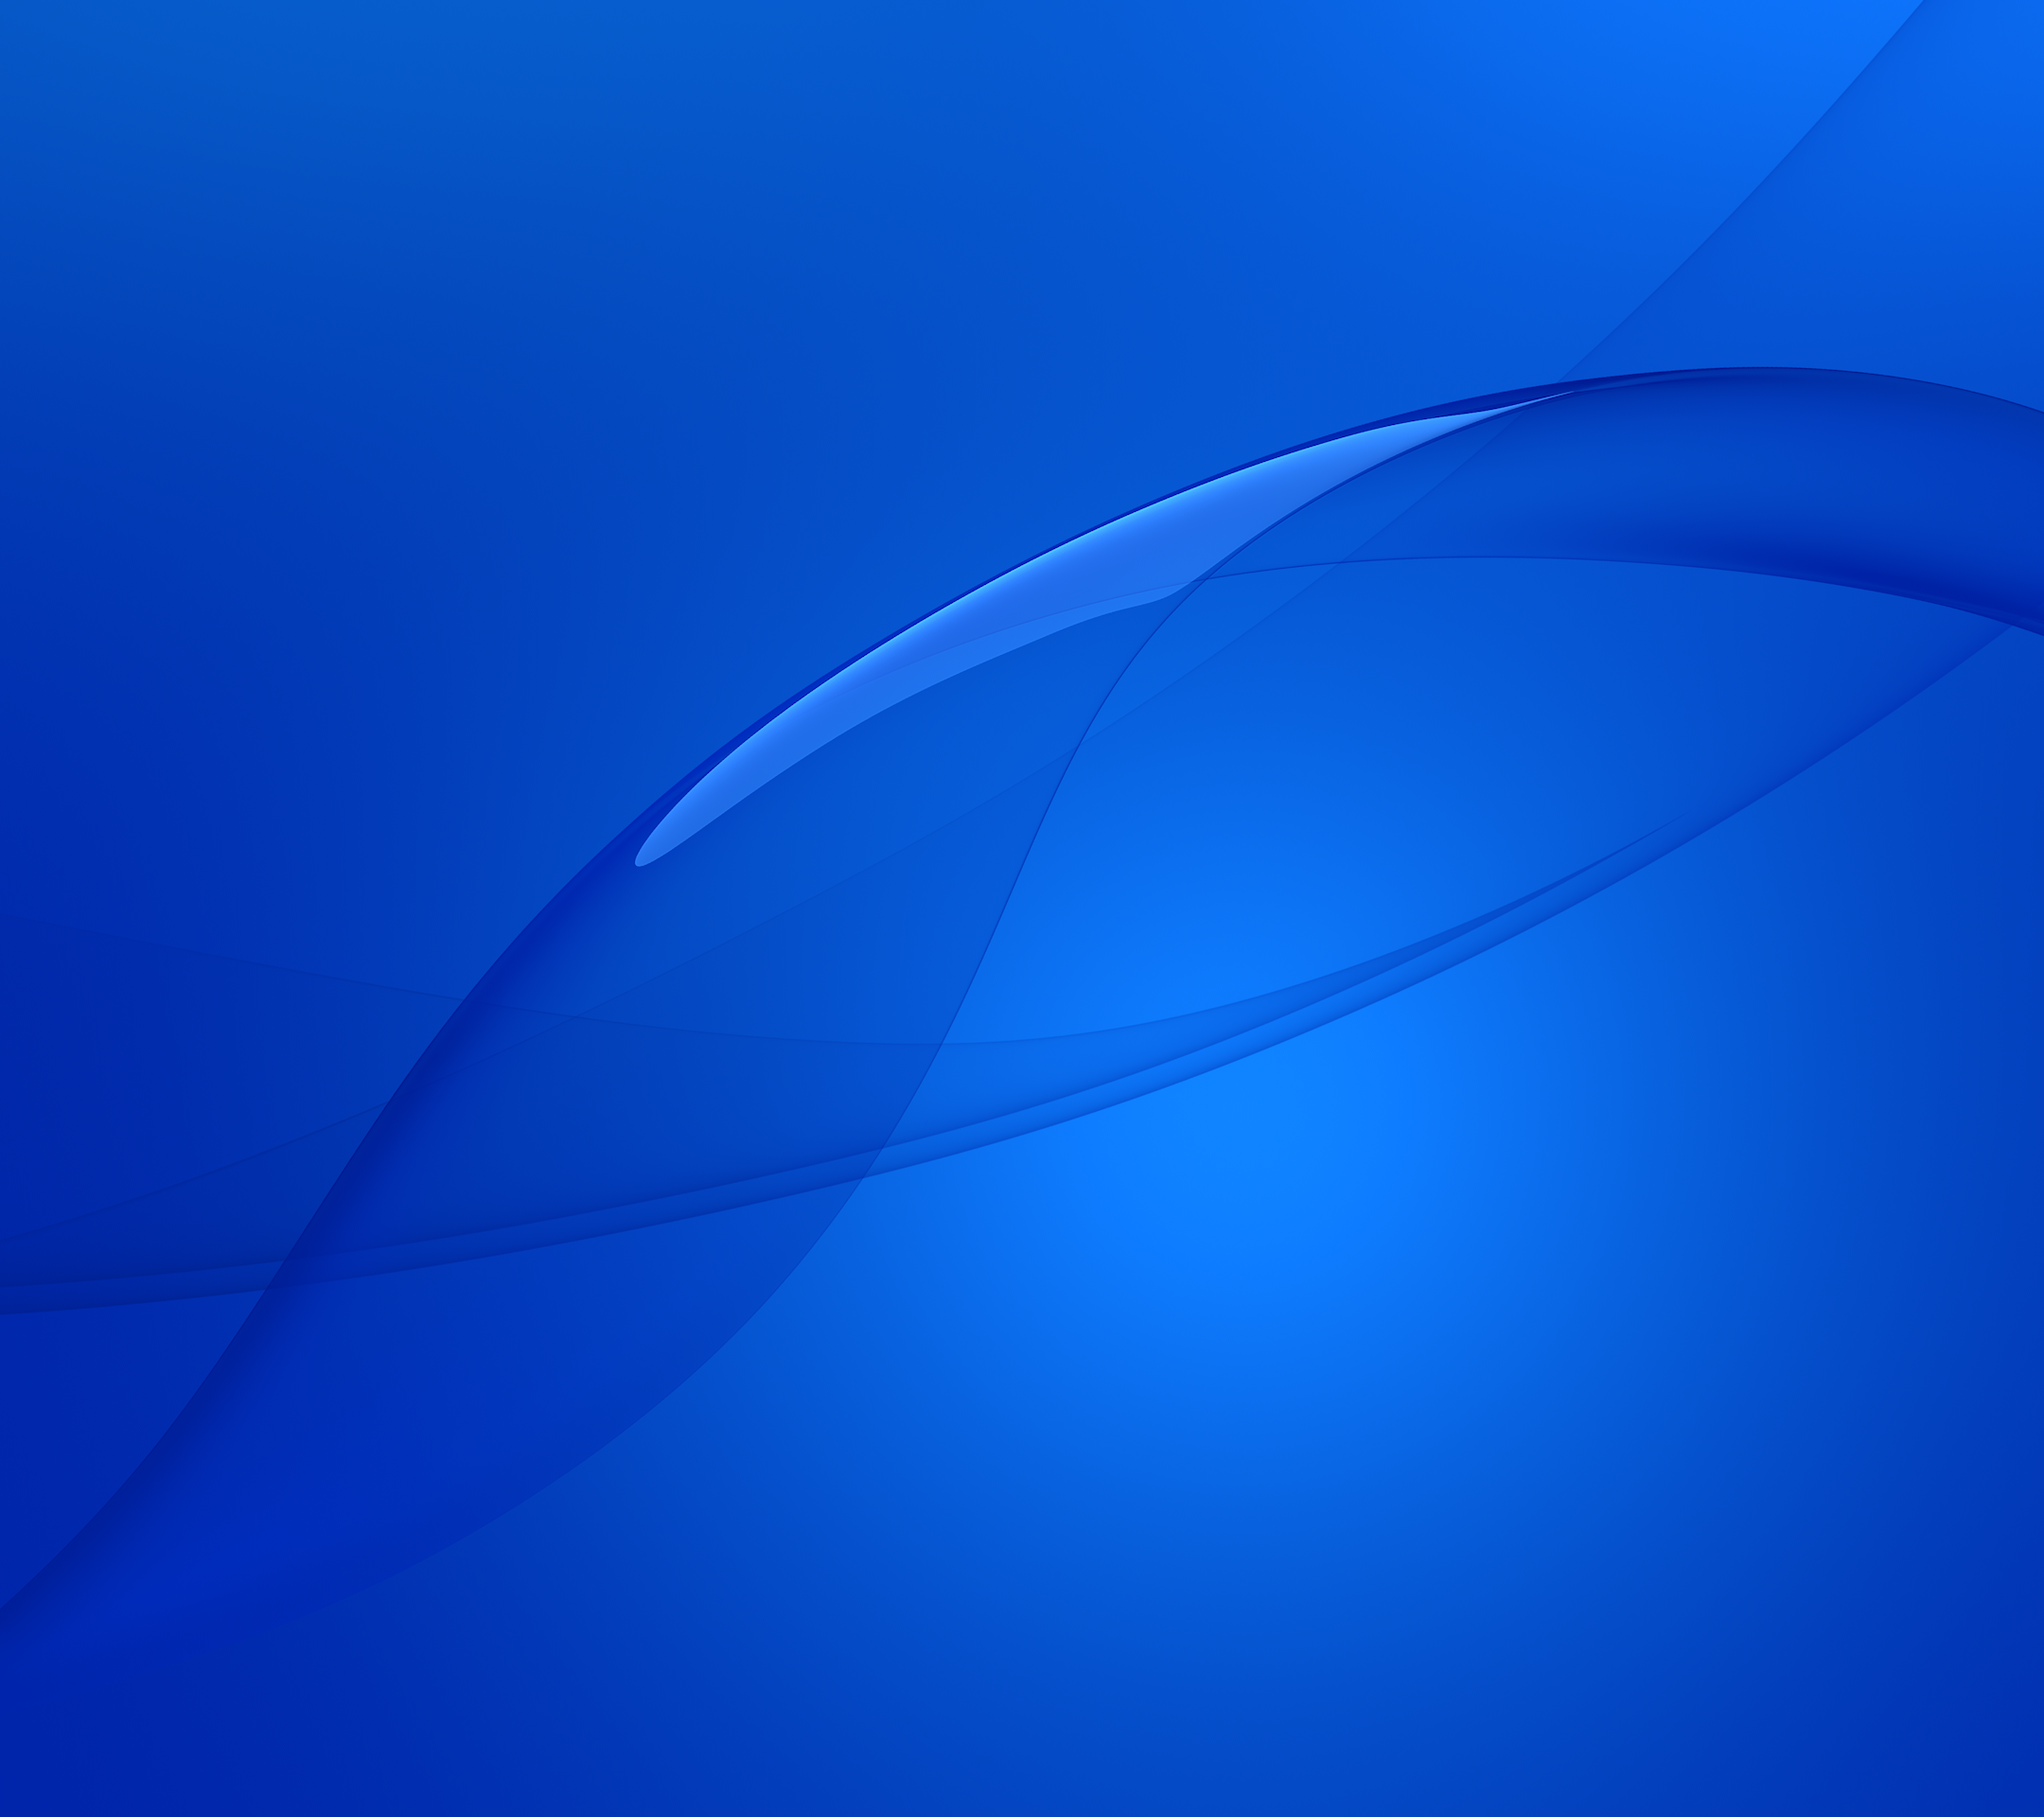 xperia wallpaper xperia high quality mobile and